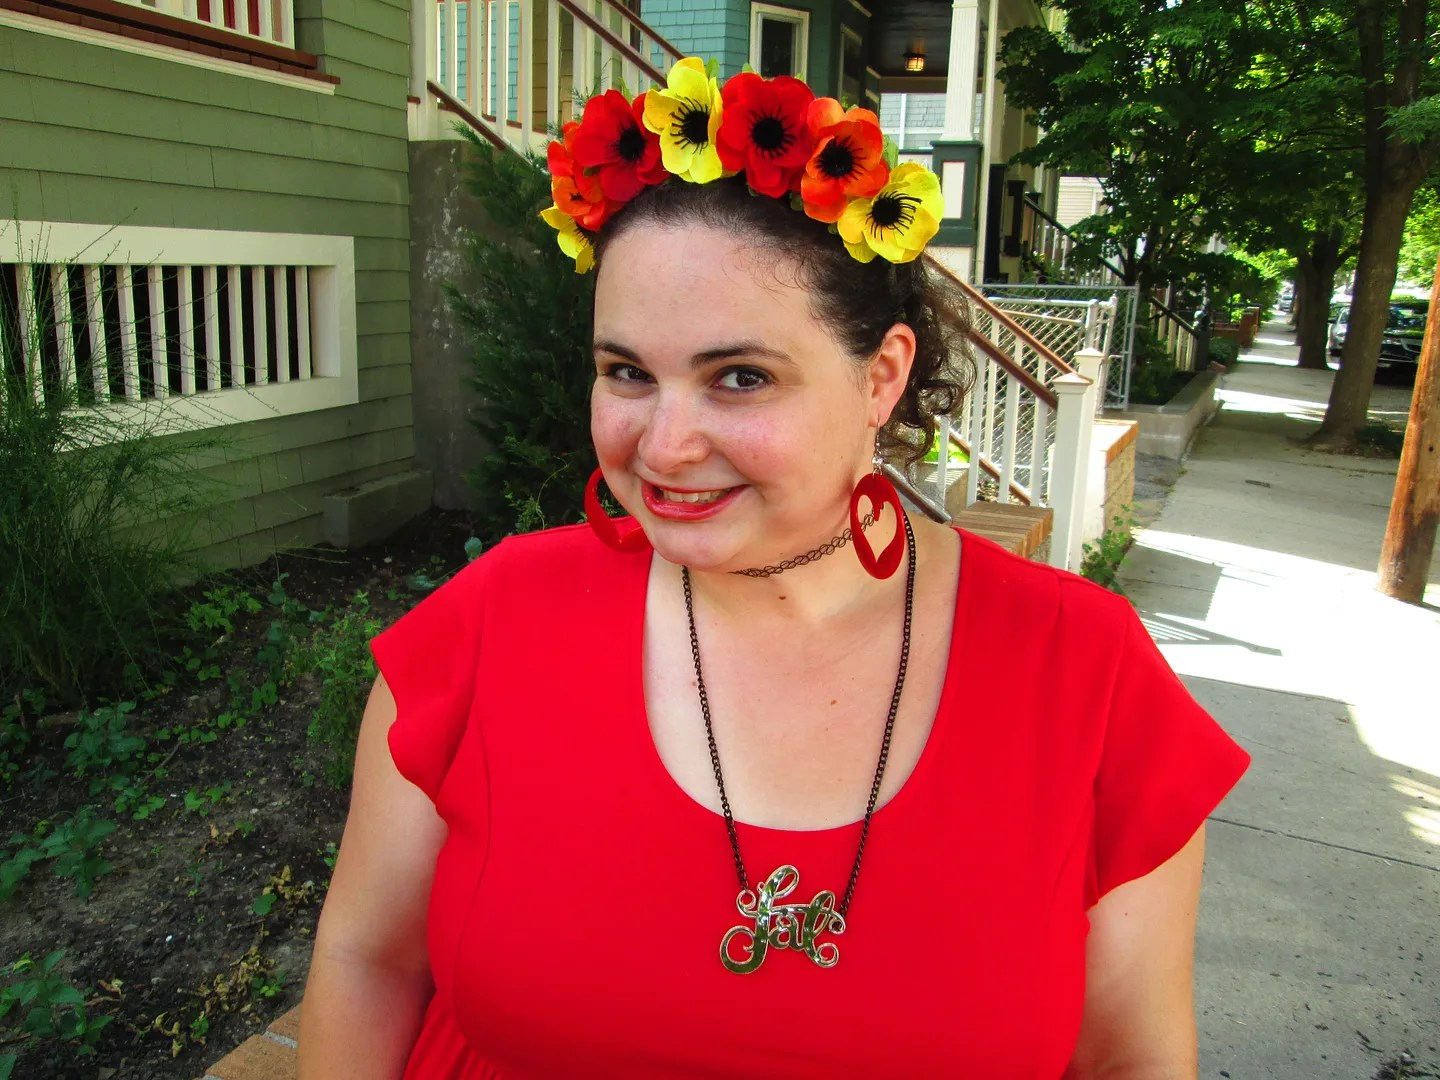 plus size outfit red dress with fat necklace and anemone crown